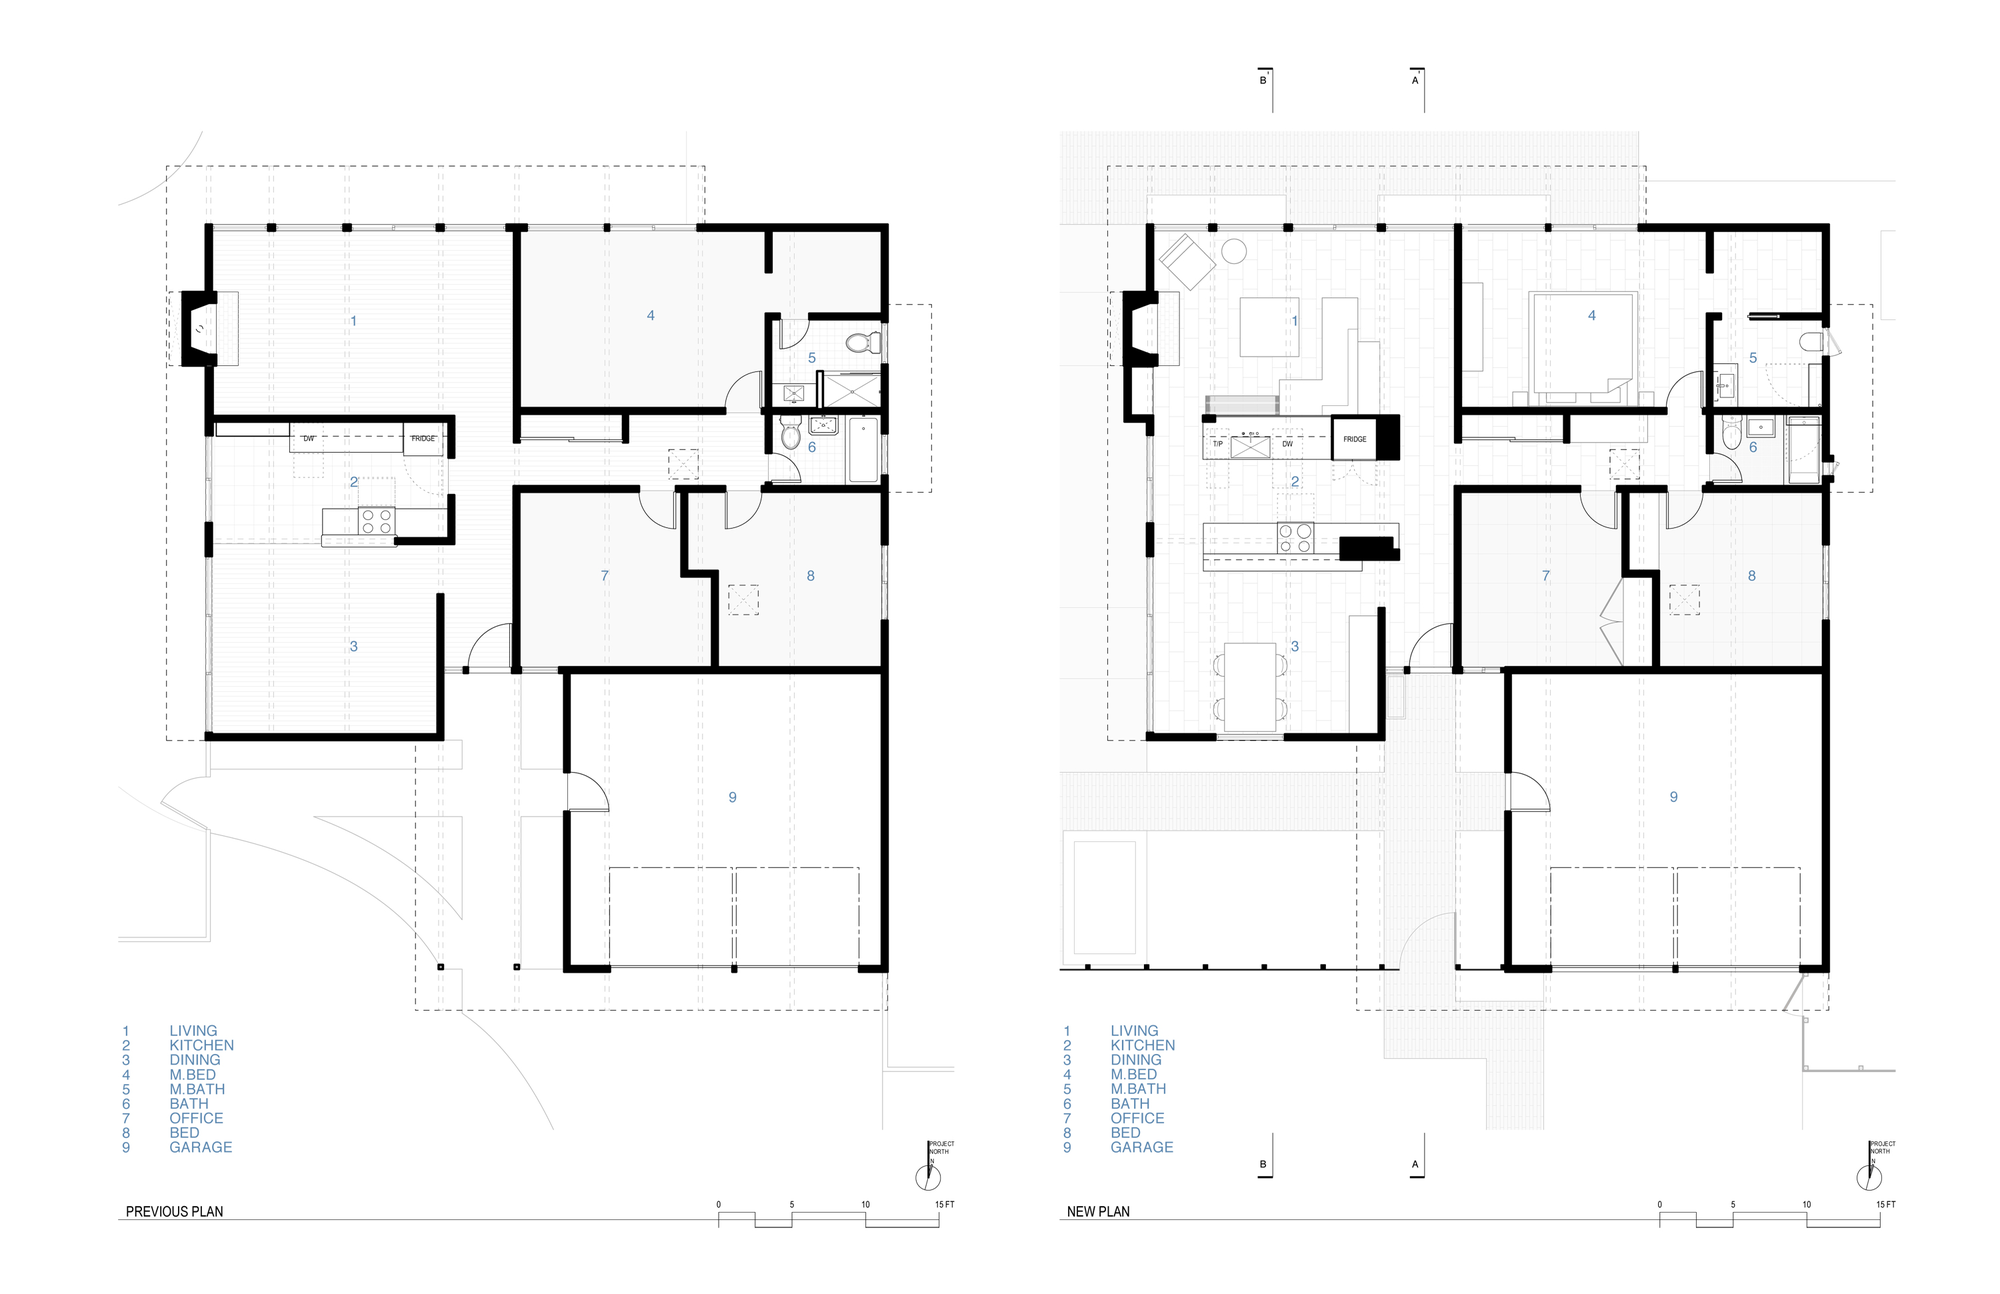 5306c8cec07a806b060000d3_shoup-residence-buildin-lab_shoup_plans